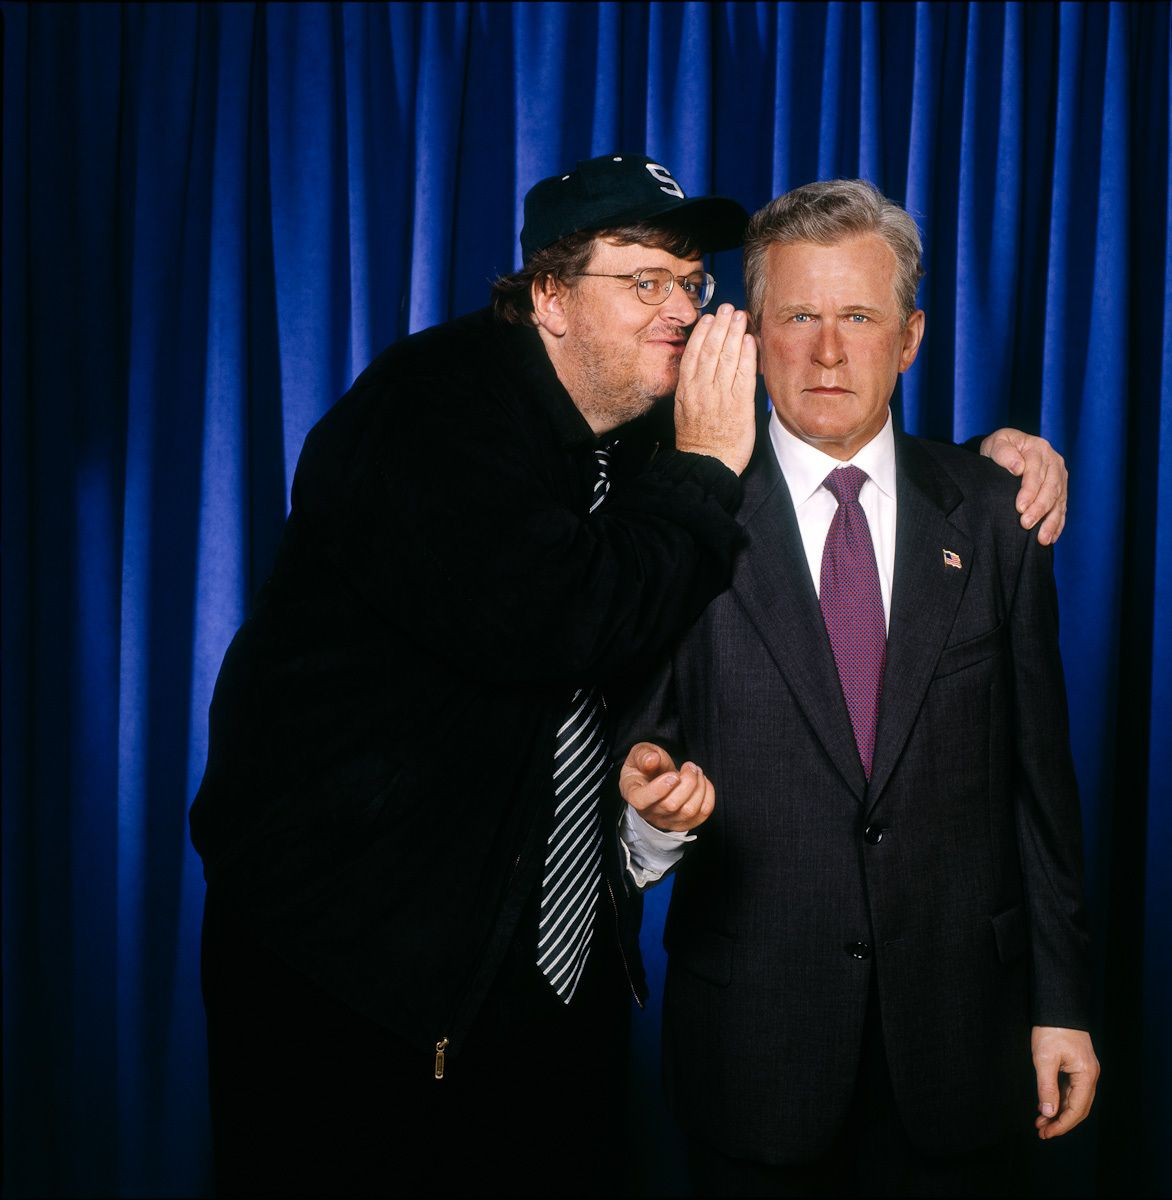 MIchael Moore, documentary filmmaker, and dummy